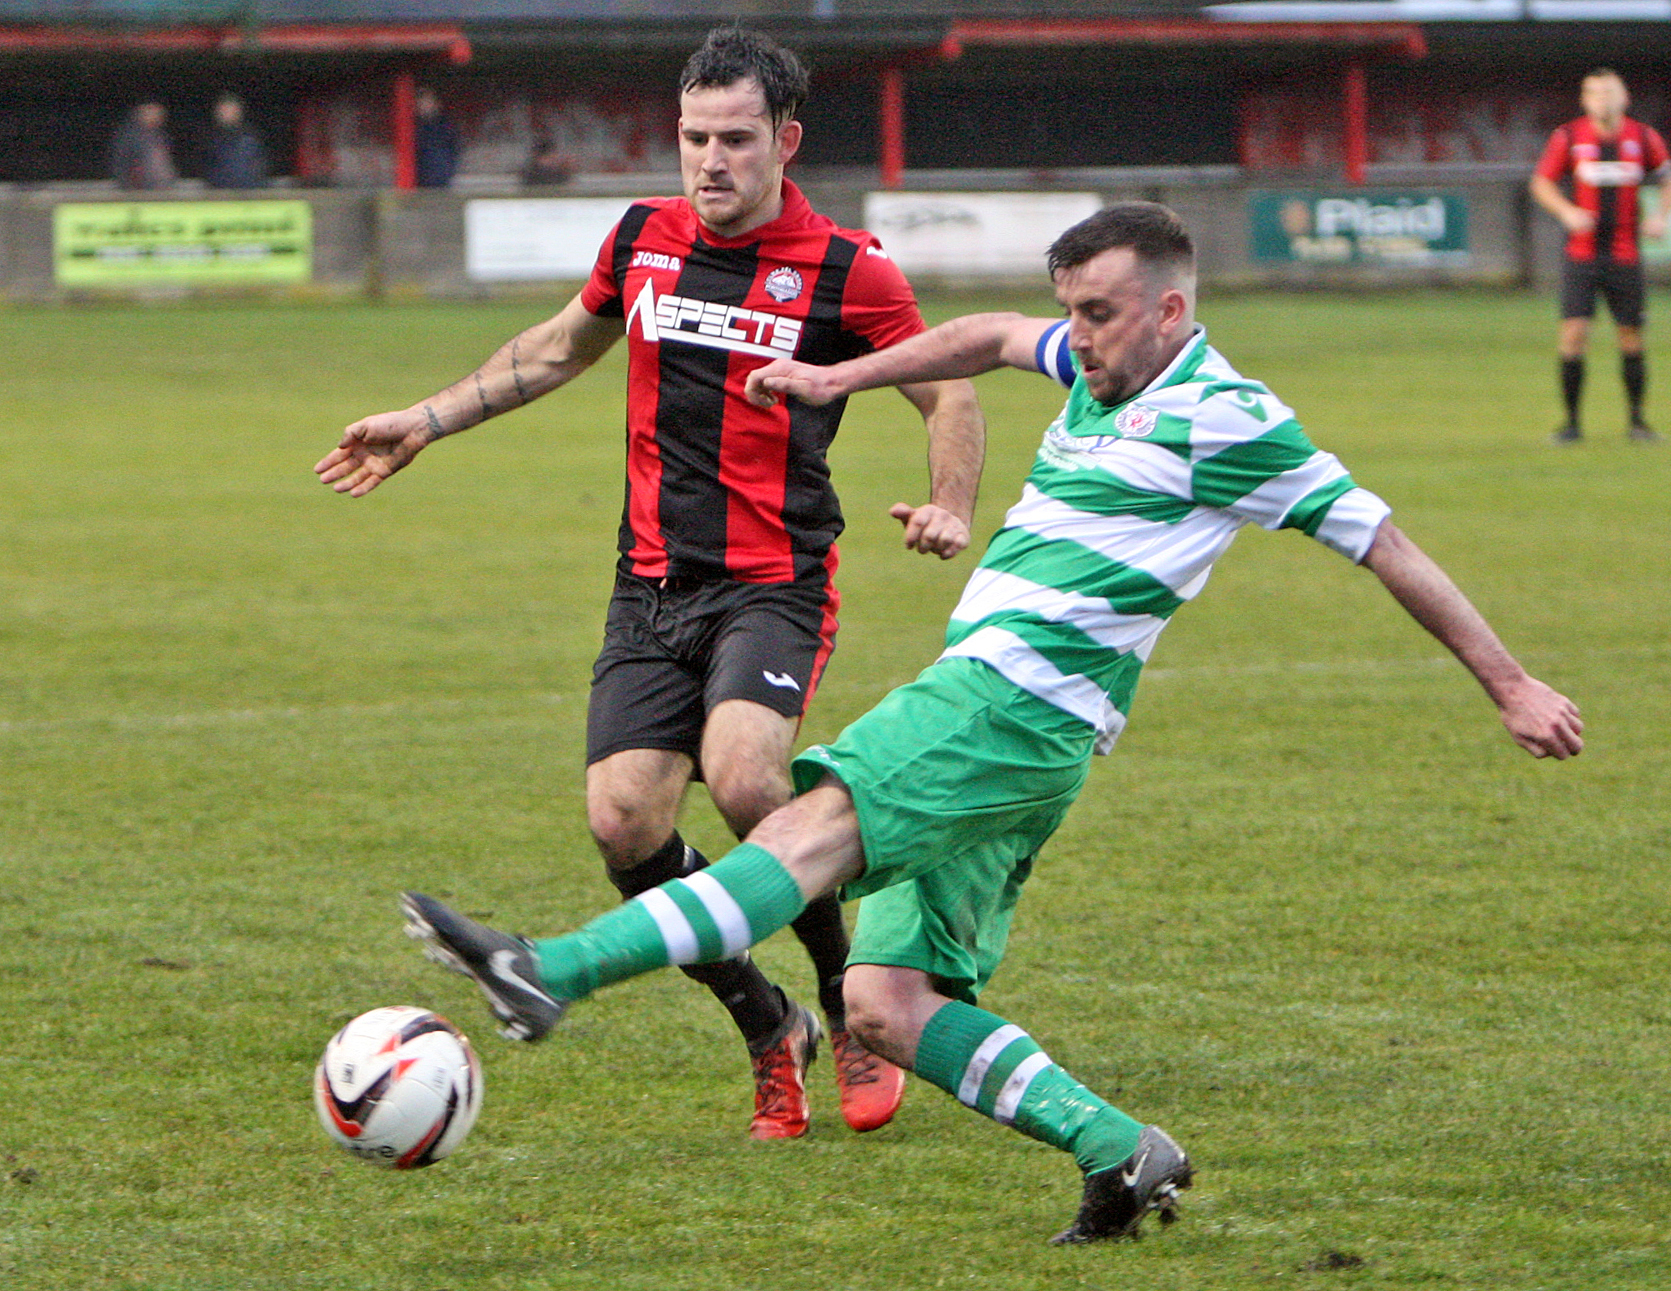 Jay Gibbs in action for Porthmadog against Holywell Town (Photo by Richard Birch)